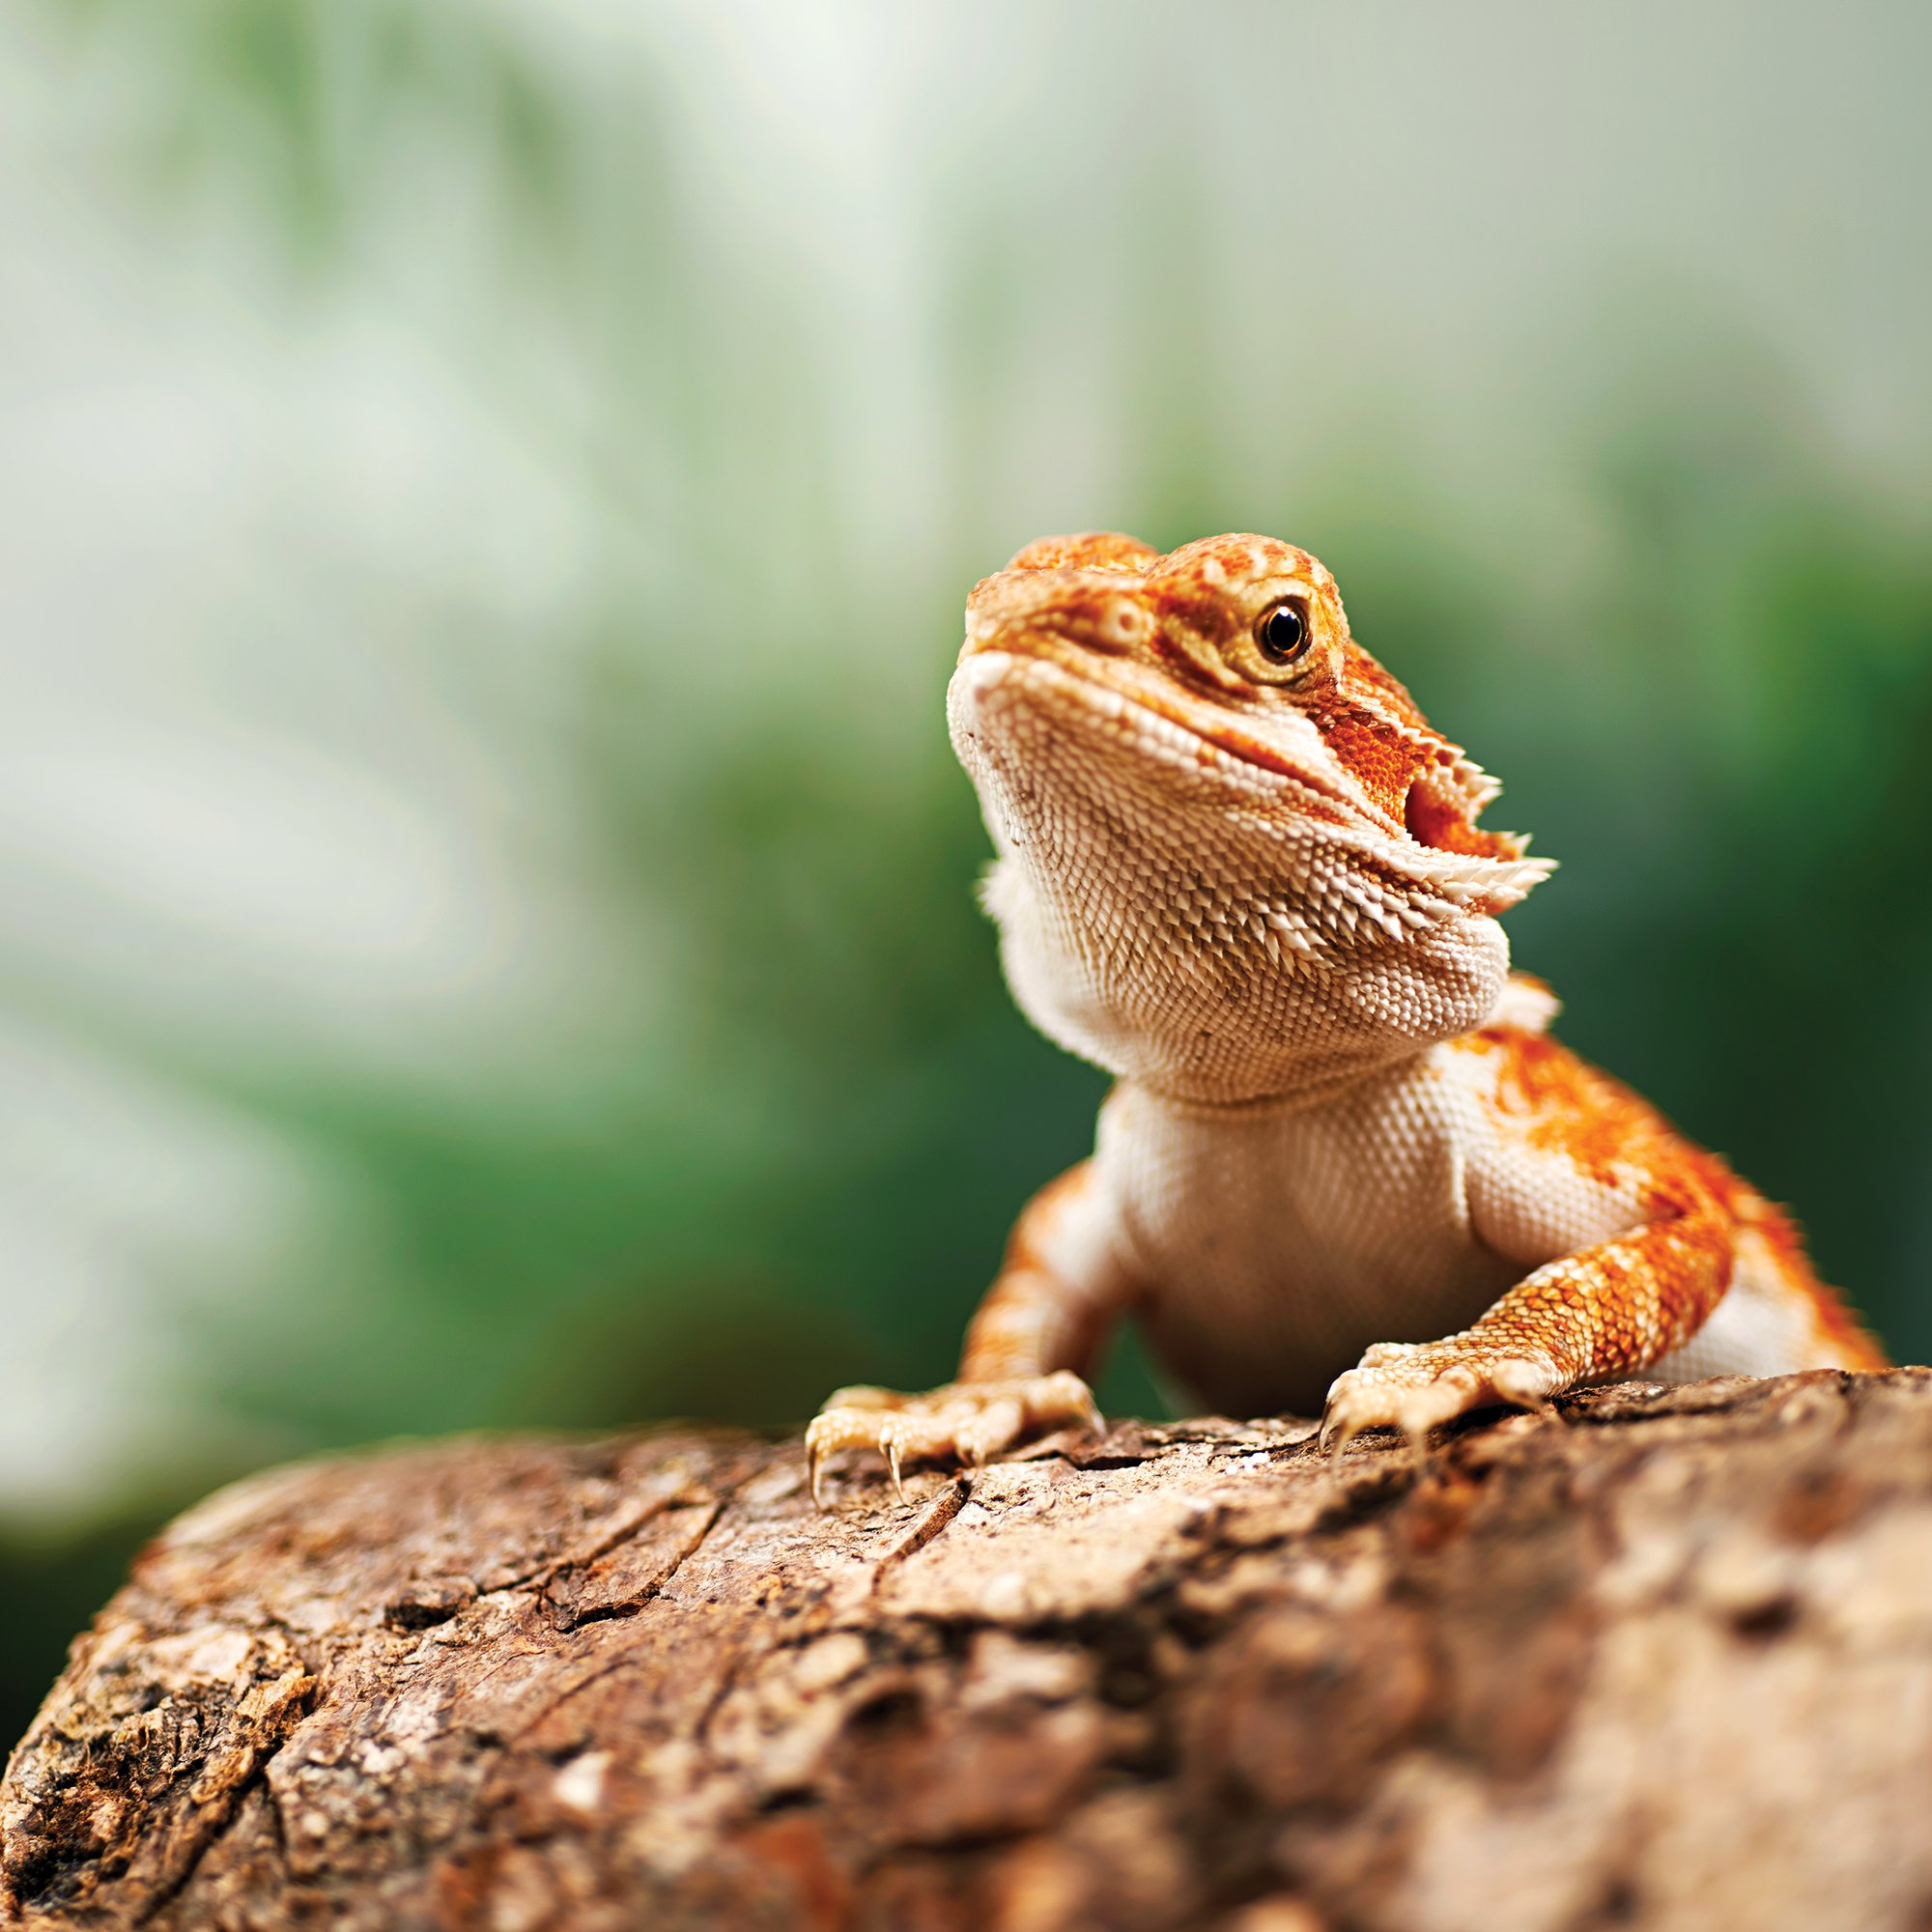 Bearded dragons for sale buy live bearded dragons for for Petco fish sale